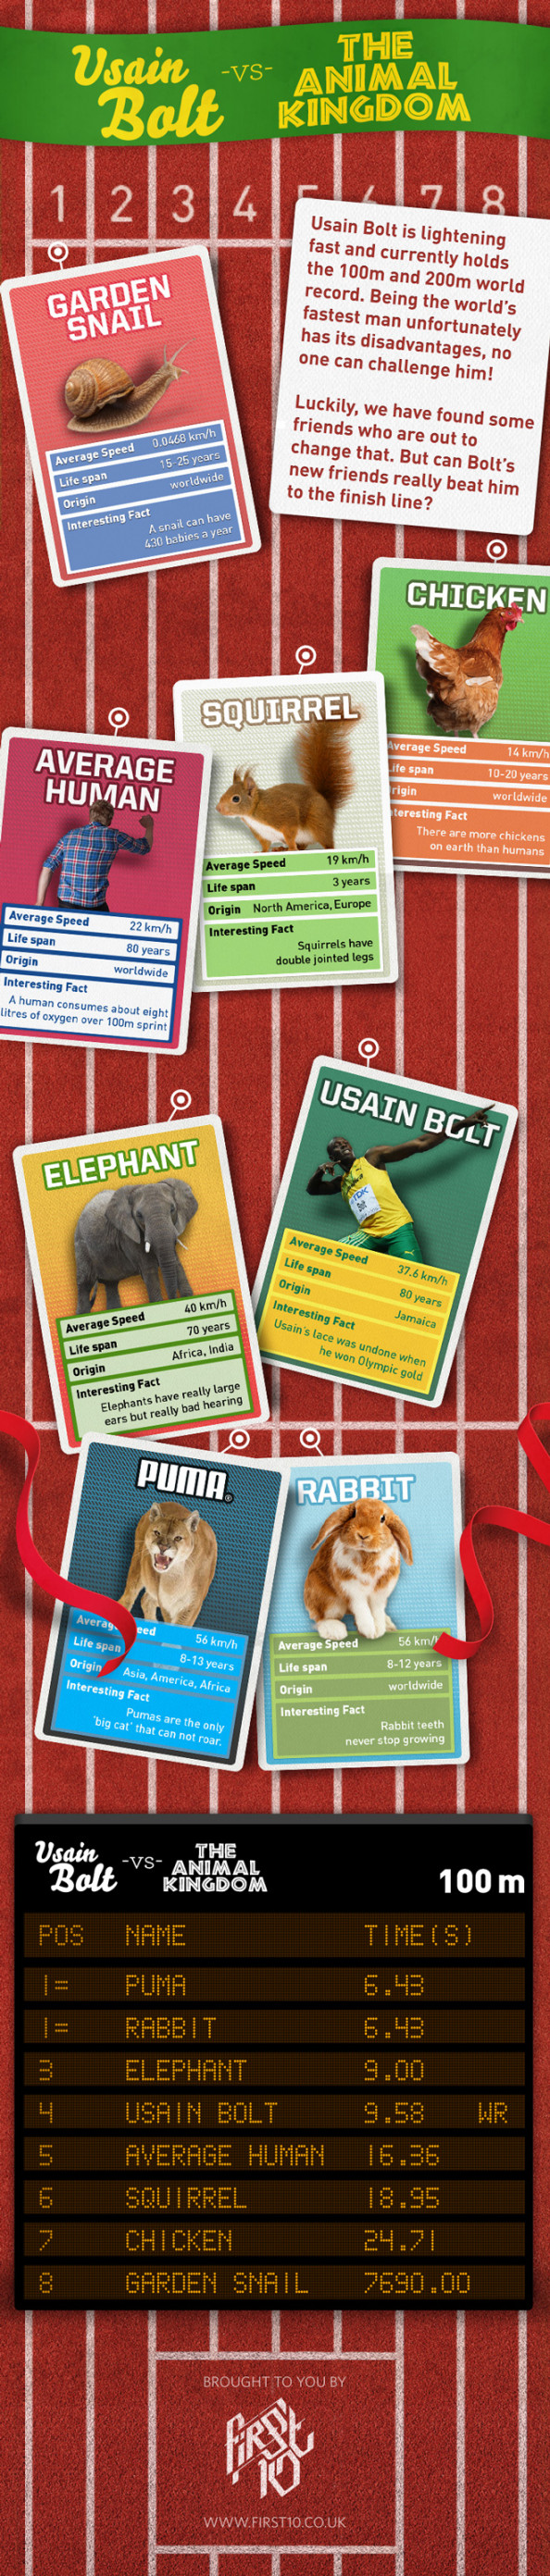 Usain Bolt vs The Animal Kingdom Infographic